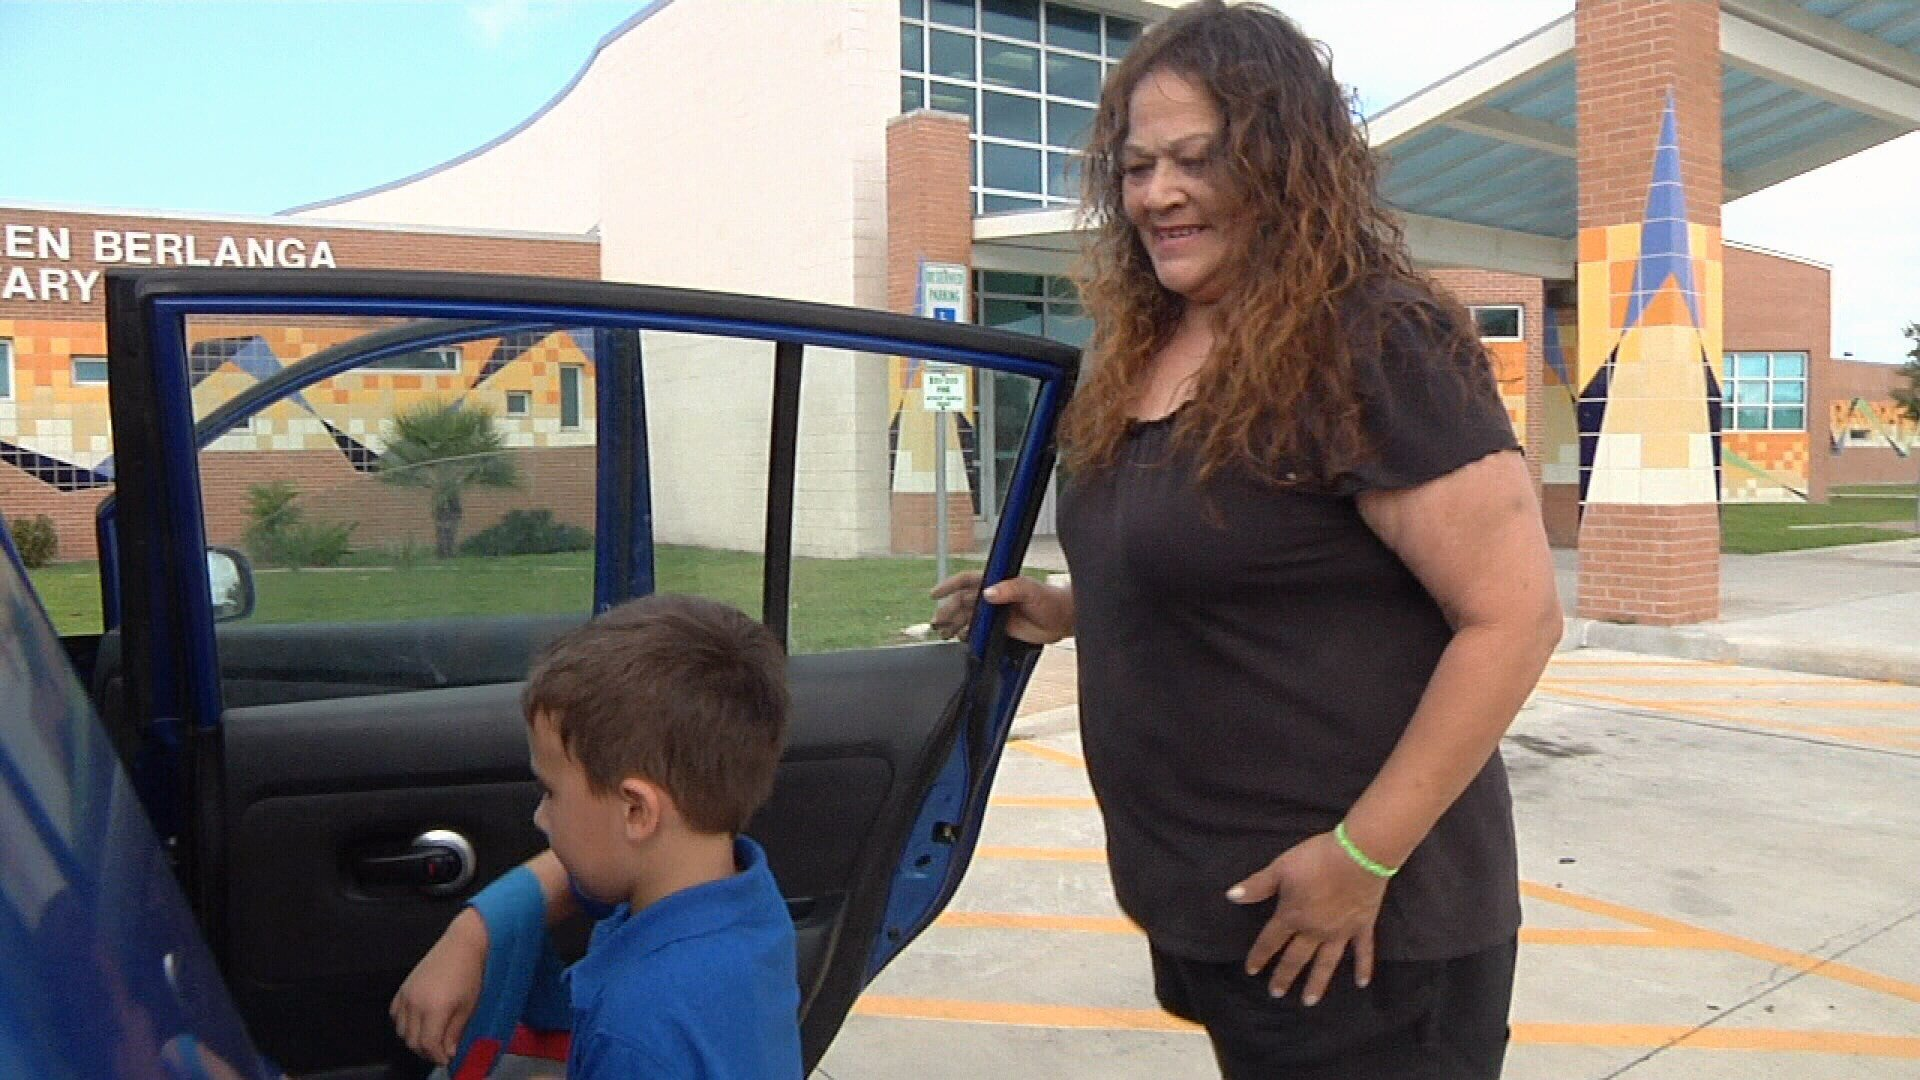 The 'Latchkey' programs allows kids at two dozen CCISD schools to participate in after school activities until their parents can pick them up.